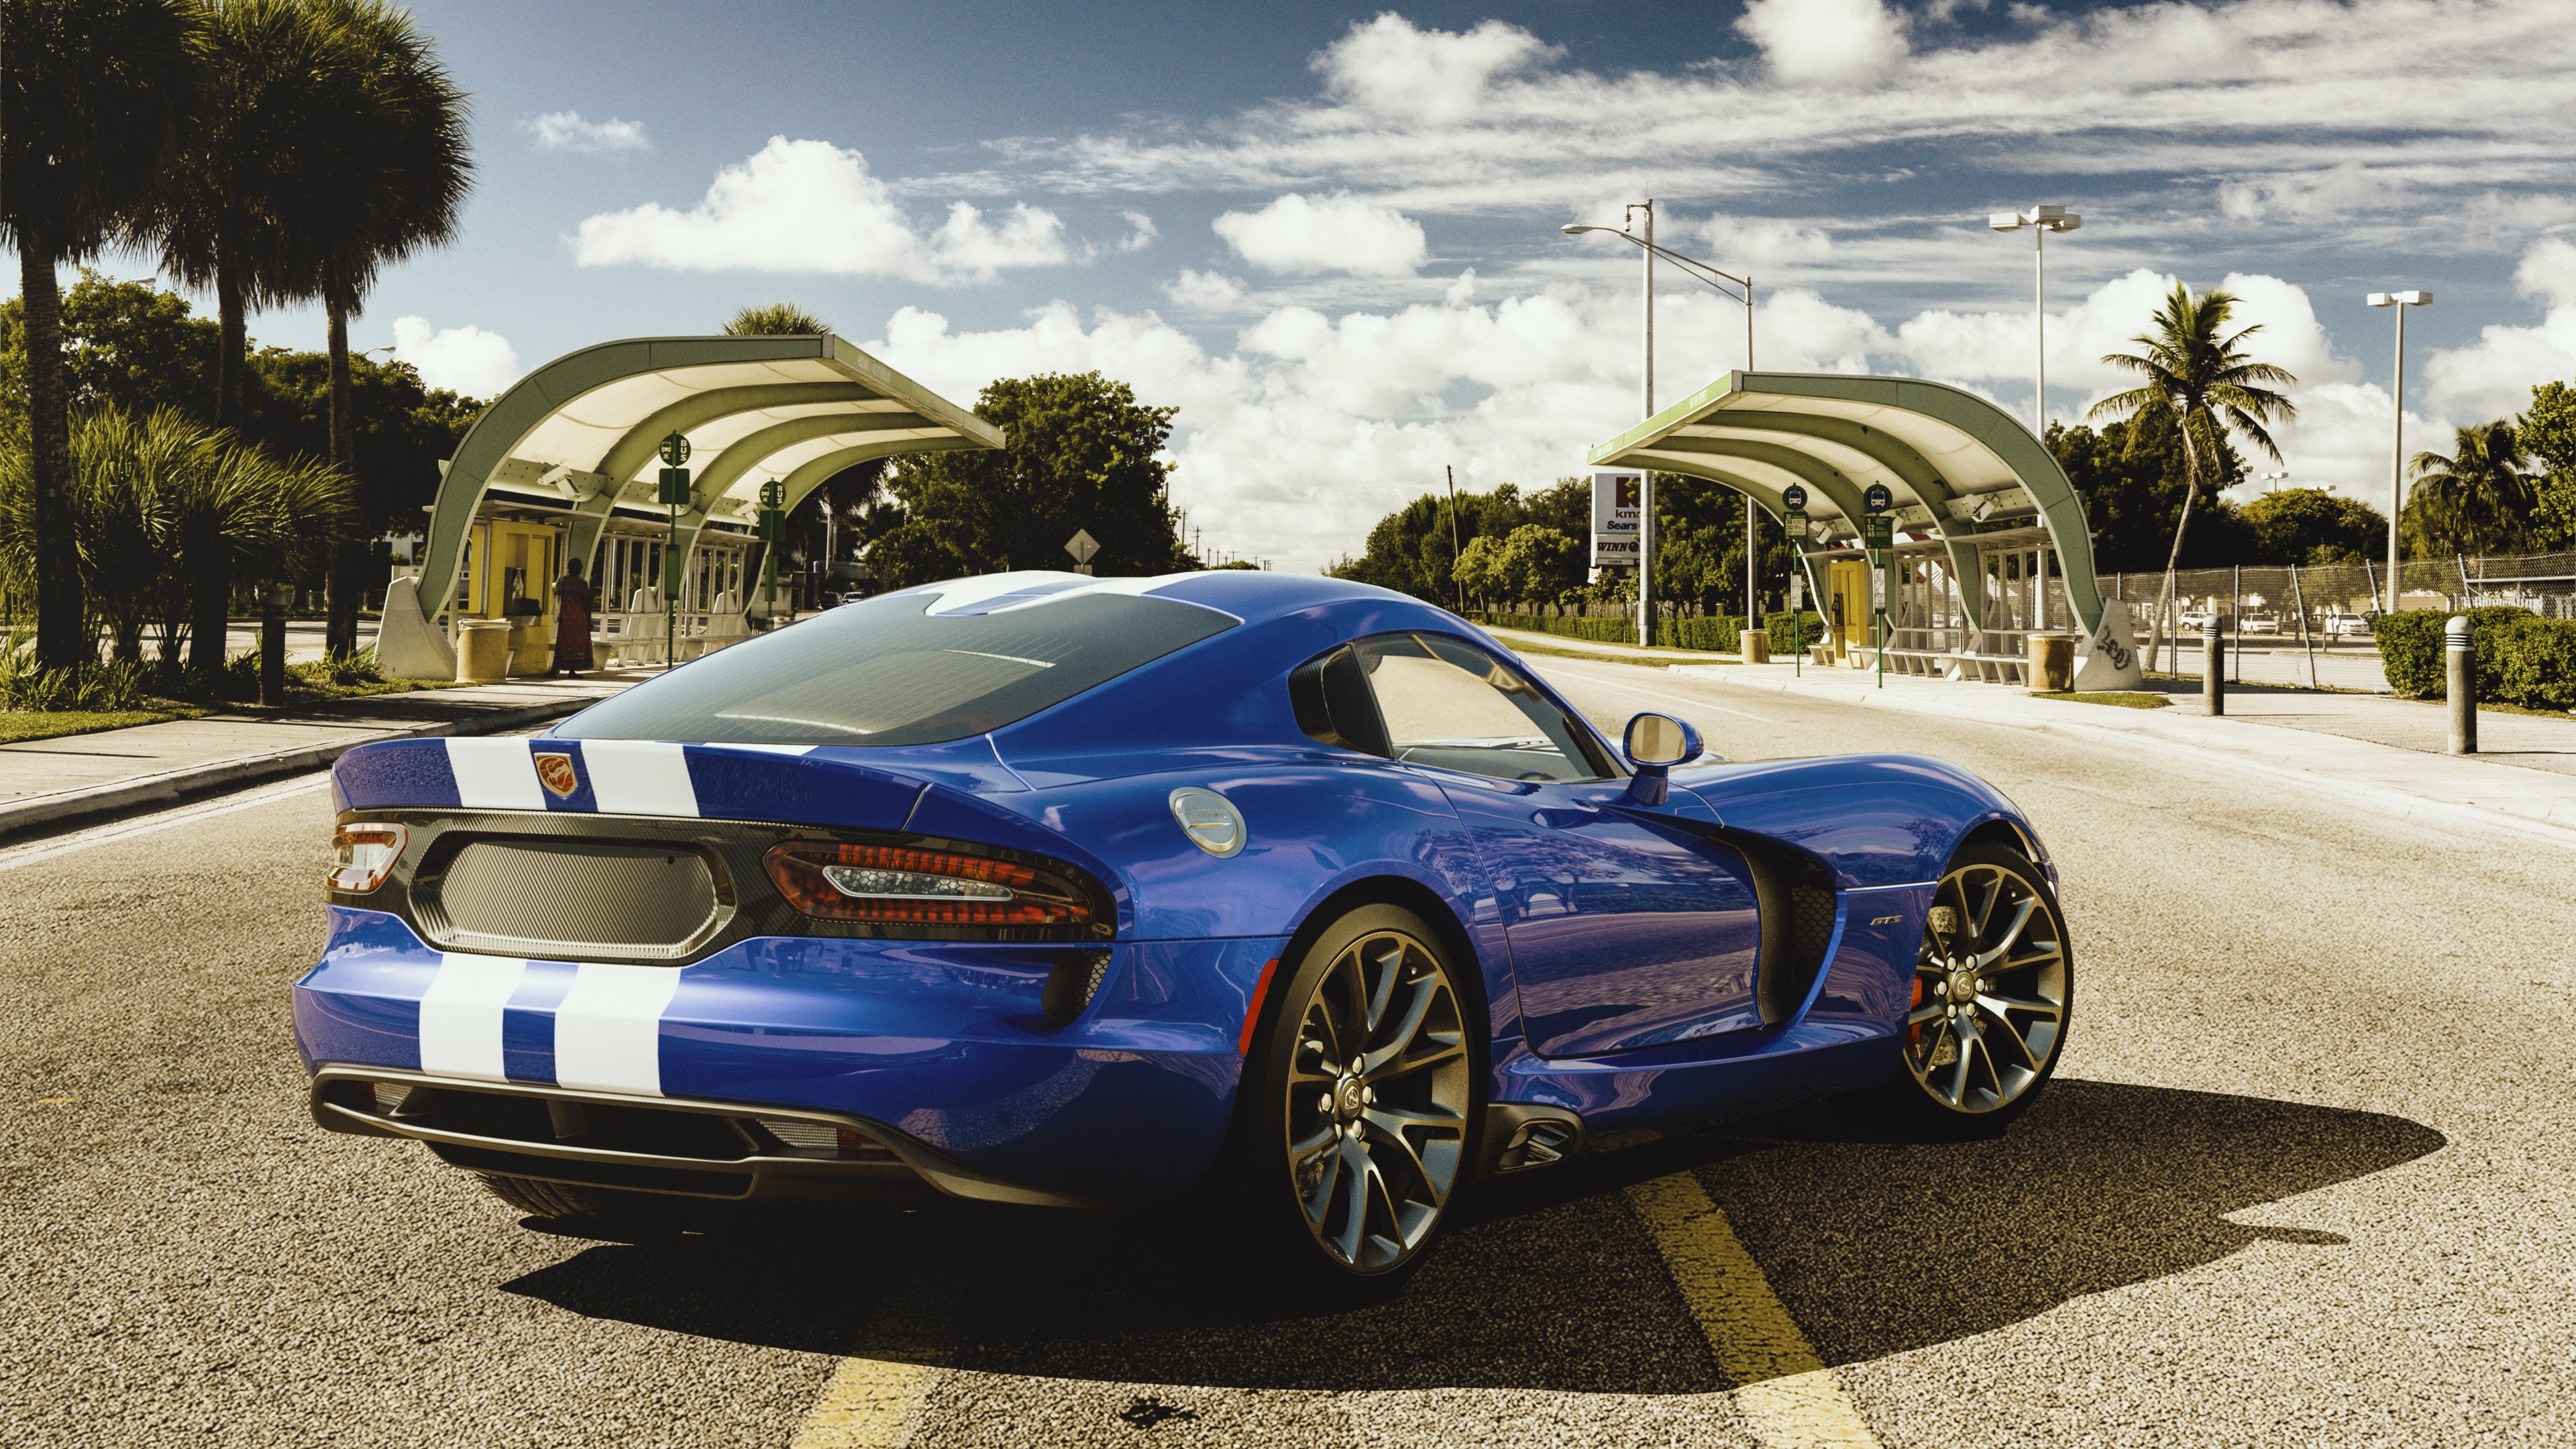 Dodge Sports Cars Wallpaper 17 Widescreen Car Wallpaper